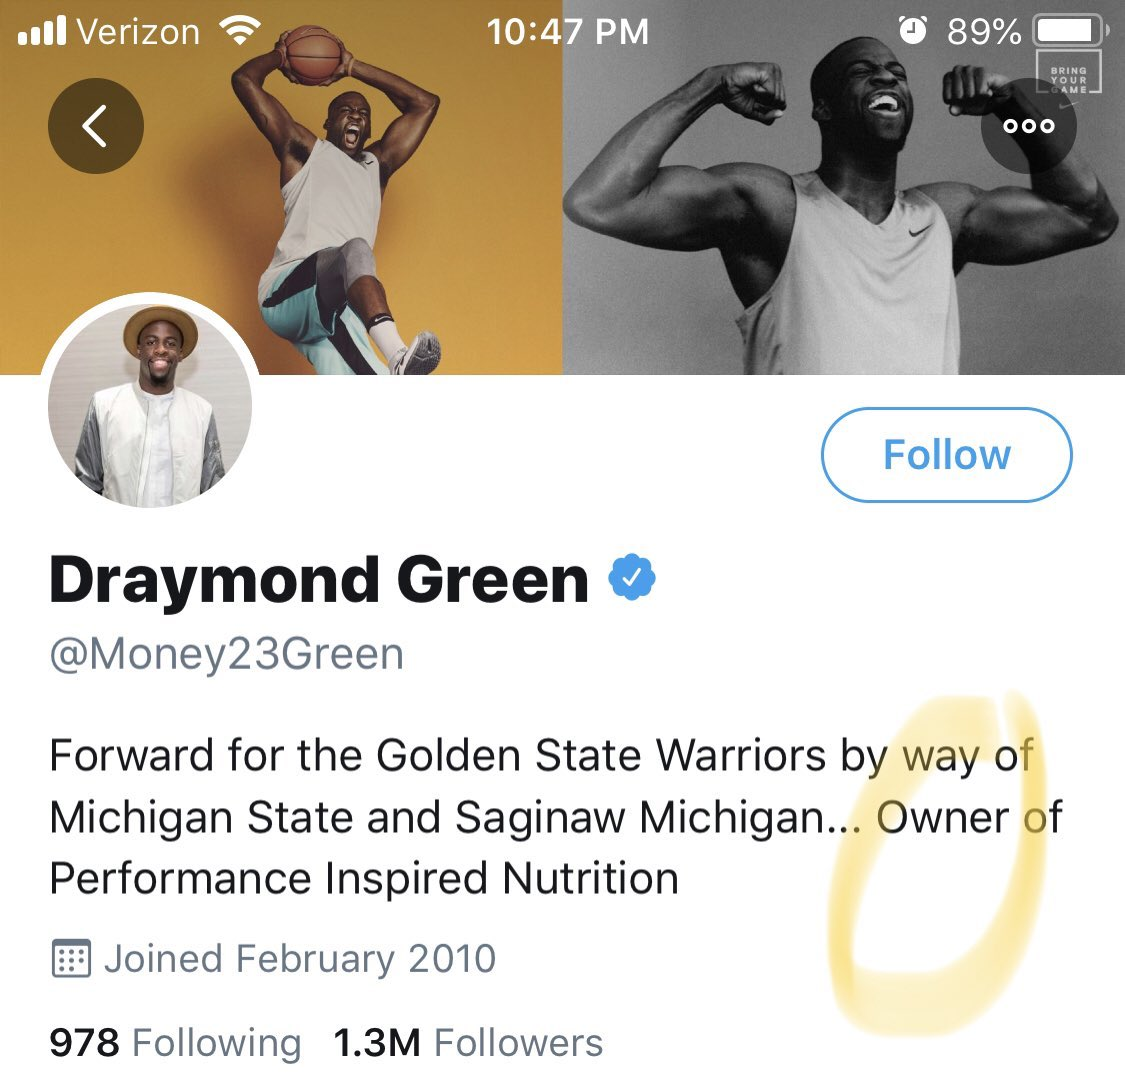 Draymond Green, who said he found the word owner racially insensitive and helped to lead the NBA to refer to all team owners as governors now, says he's an owner of a business in his Twitter bio. You can't even make this stuff up.